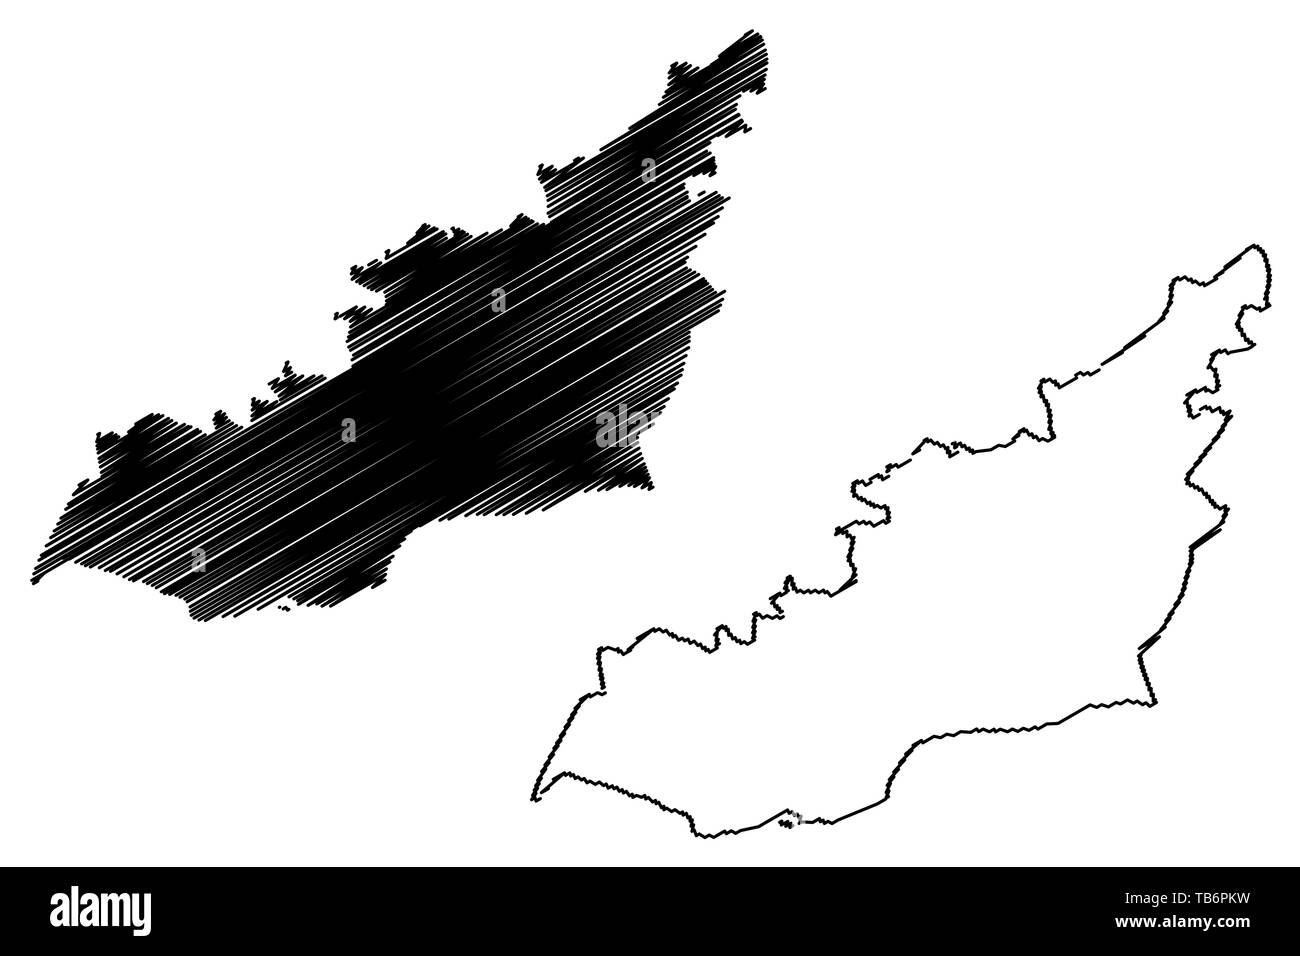 Lahij Governorate (Governorates of Yemen, Republic of Yemen) map vector illustration, scribble sketch Lahij map Stock Vector